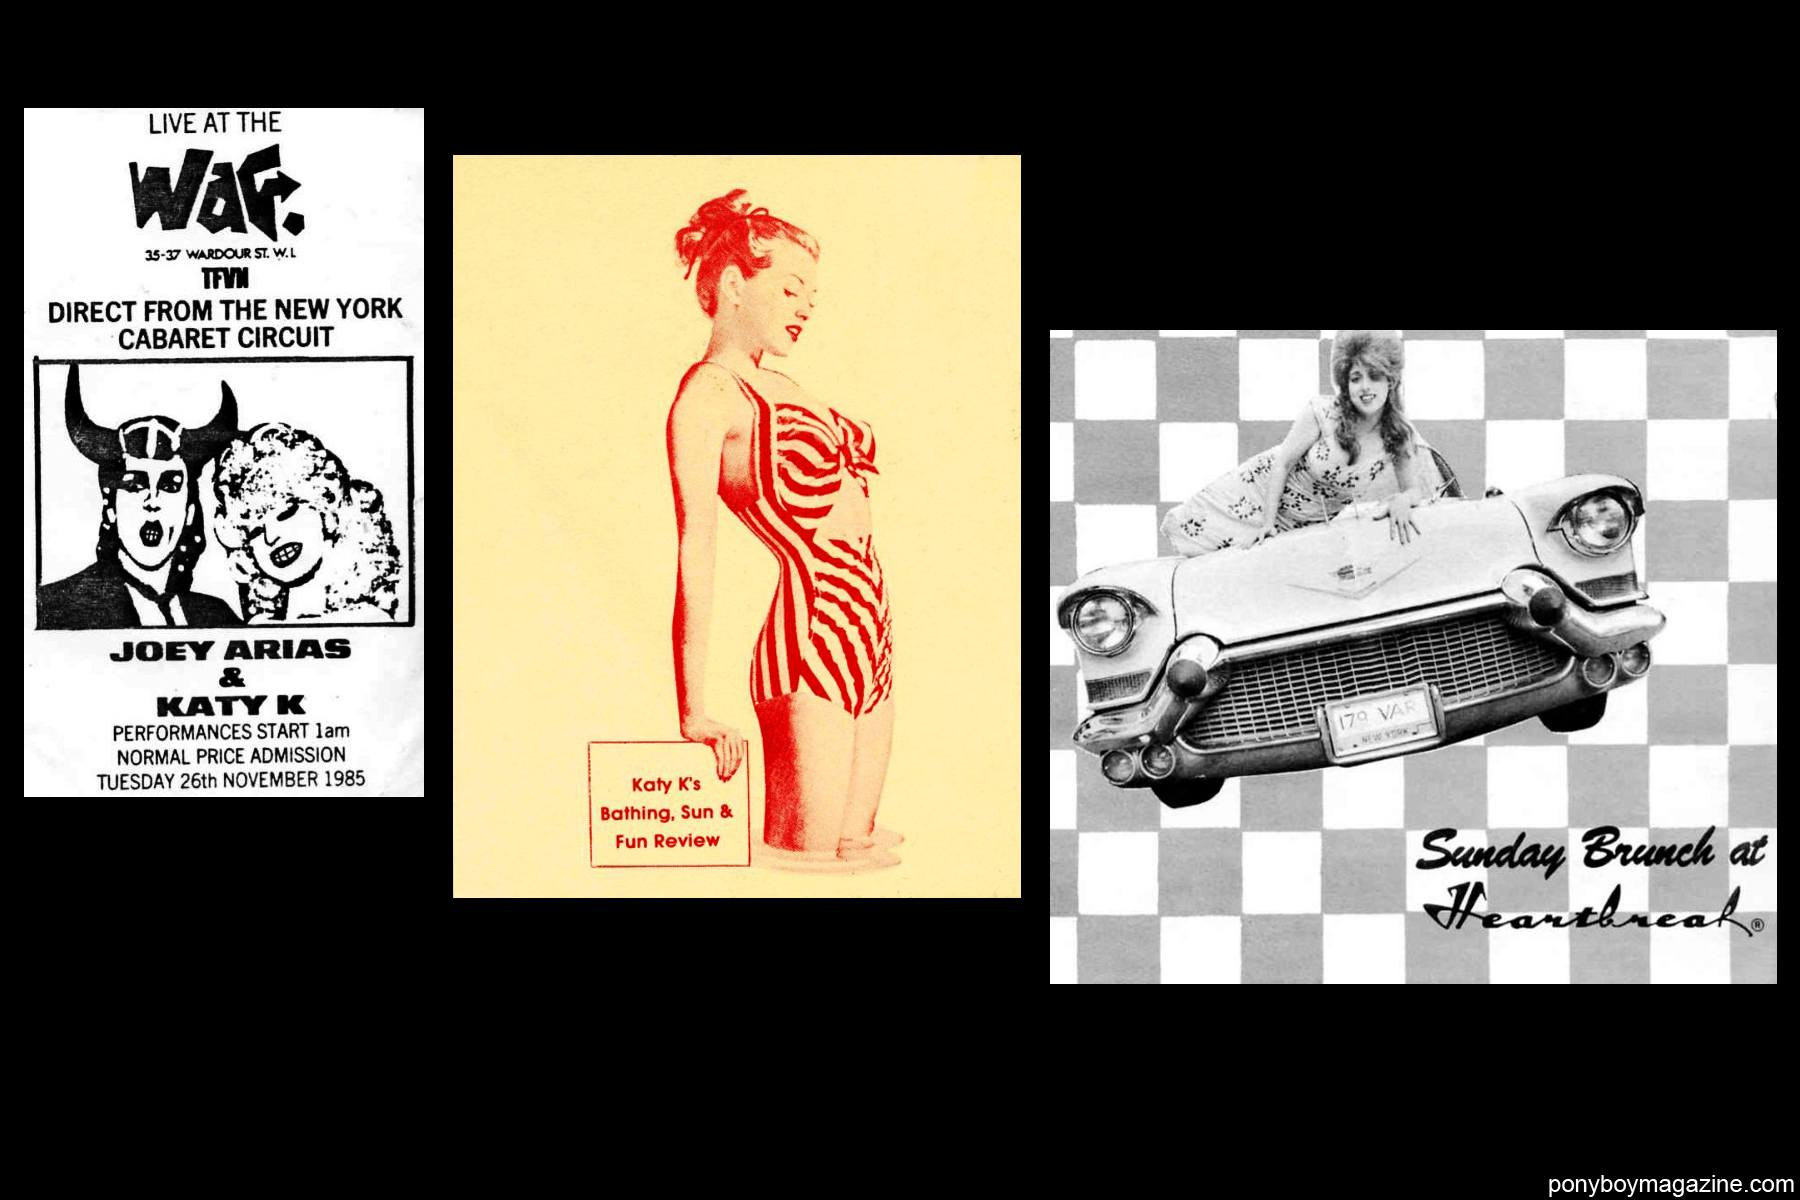 NYC 80's vintage flyers of performances for Katy K and Joey Arias, for Ponyboy Magazine.